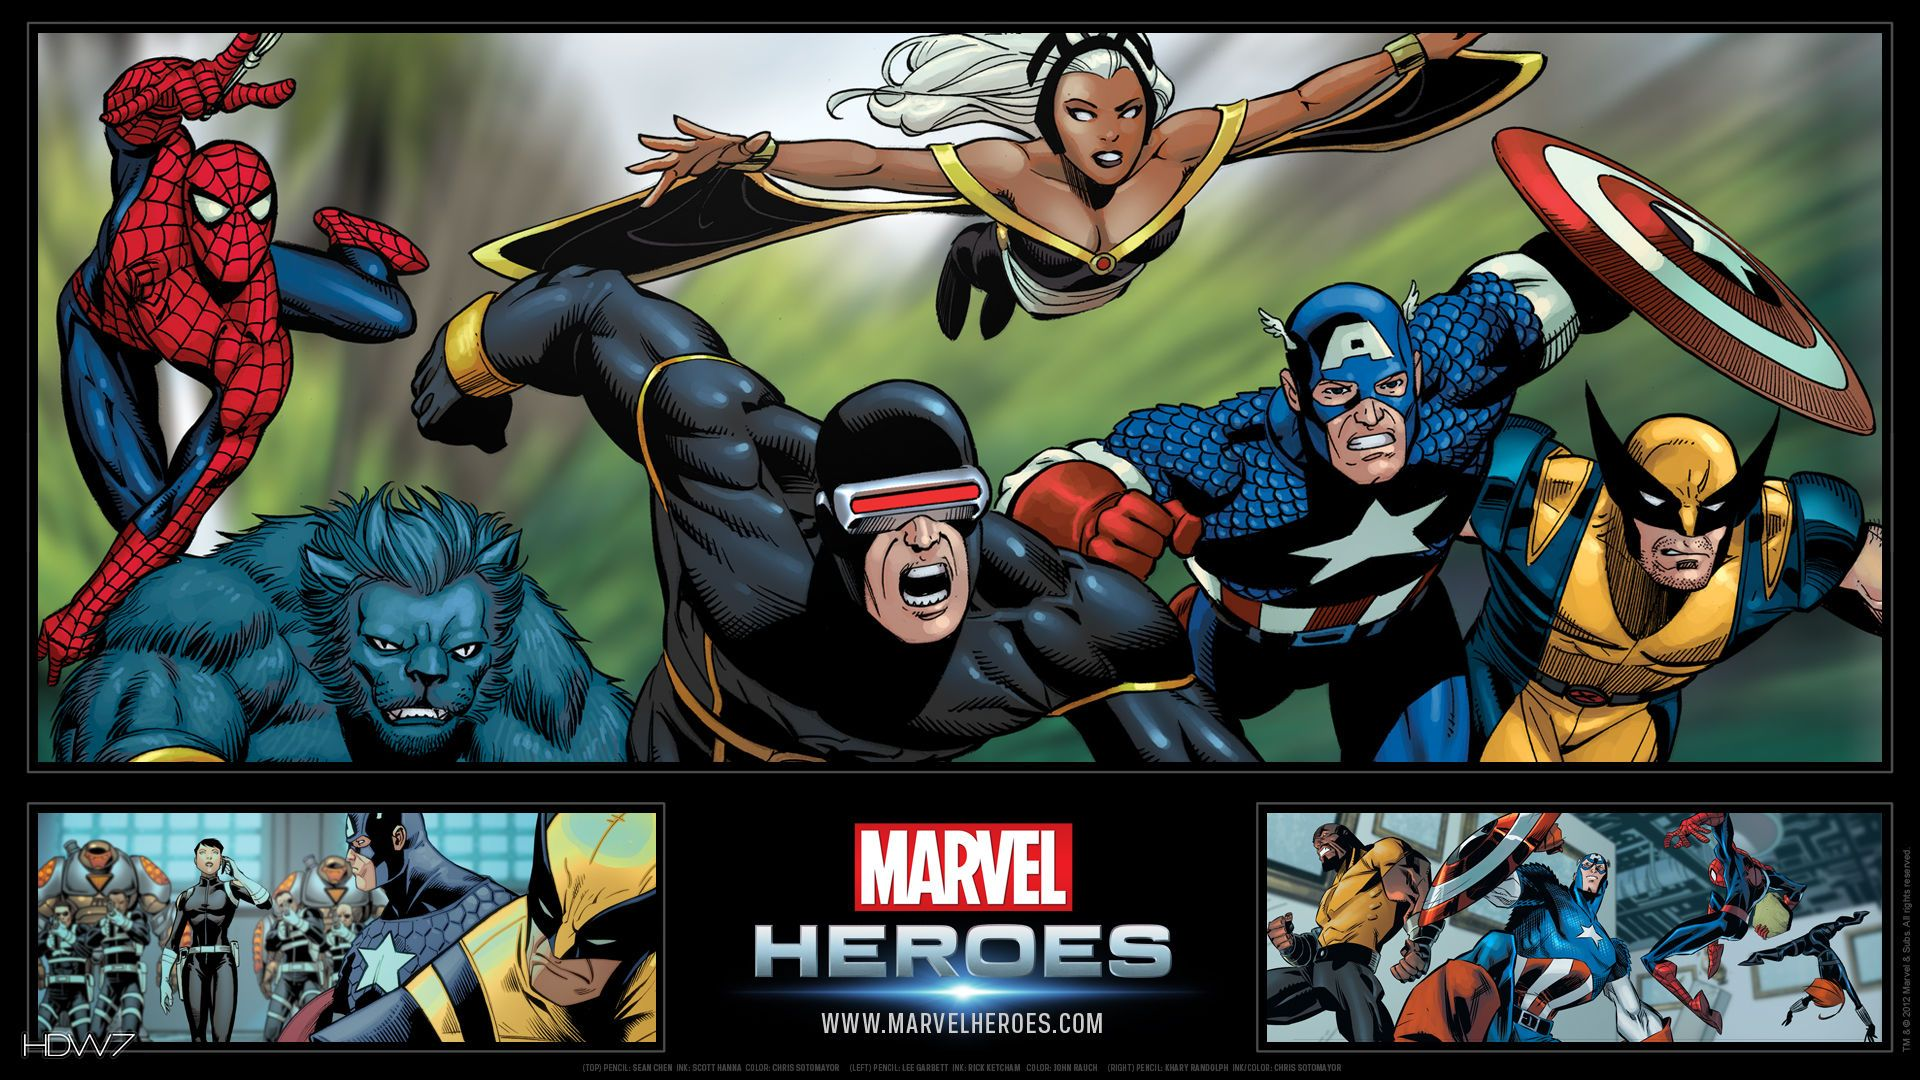 Marvel Heroes Wallpapers - Top Free Marvel Heroes